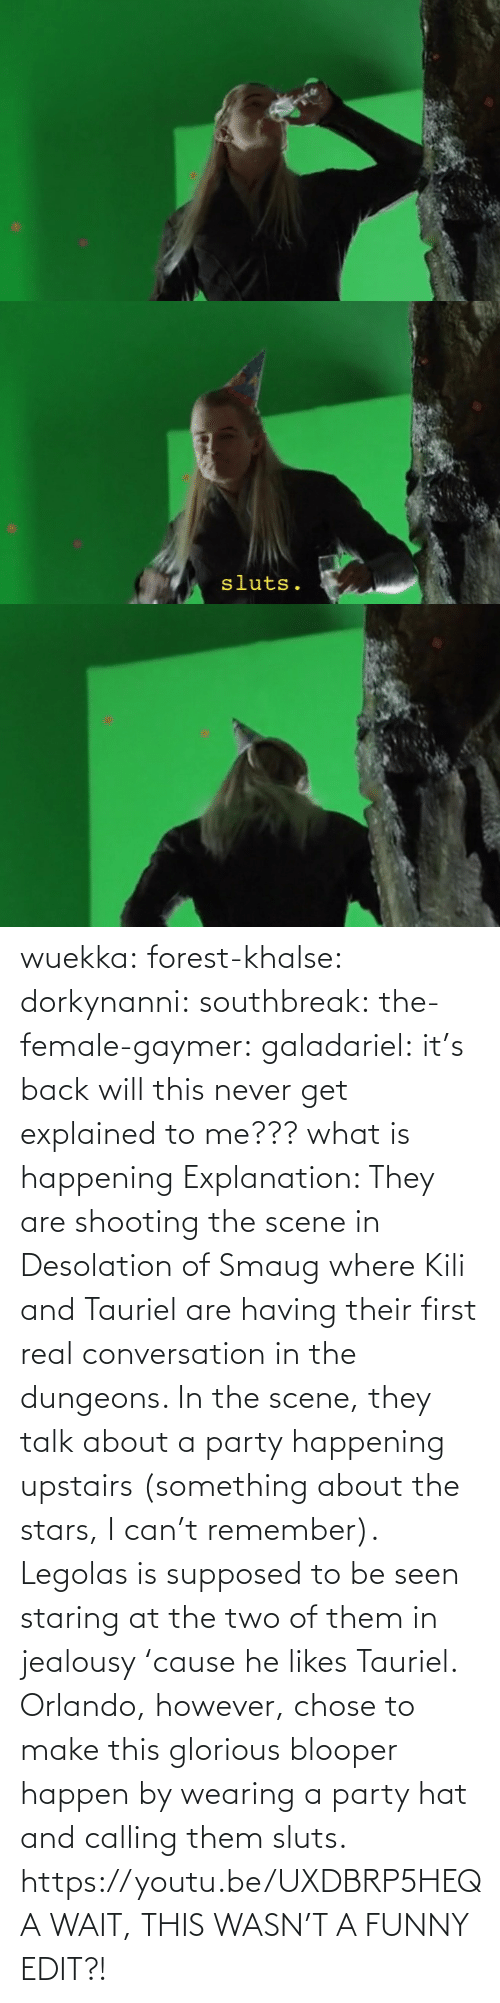 edit: wuekka: forest-khalse:   dorkynanni:  southbreak:   the-female-gaymer:   galadariel:  it's back   will this never get explained to me???    what is happening    Explanation:  They are shooting the scene in Desolation of Smaug where Kili and Tauriel are having their first real conversation in the dungeons.  In the scene, they talk about a party happening upstairs (something about the stars, I can't remember). Legolas is supposed to be seen staring at the two of them in jealousy 'cause he likes Tauriel.  Orlando, however, chose to make this glorious blooper happen by wearing a party hat and calling them sluts.    https://youtu.be/UXDBRP5HEQA    WAIT, THIS WASN'T A FUNNY EDIT?!